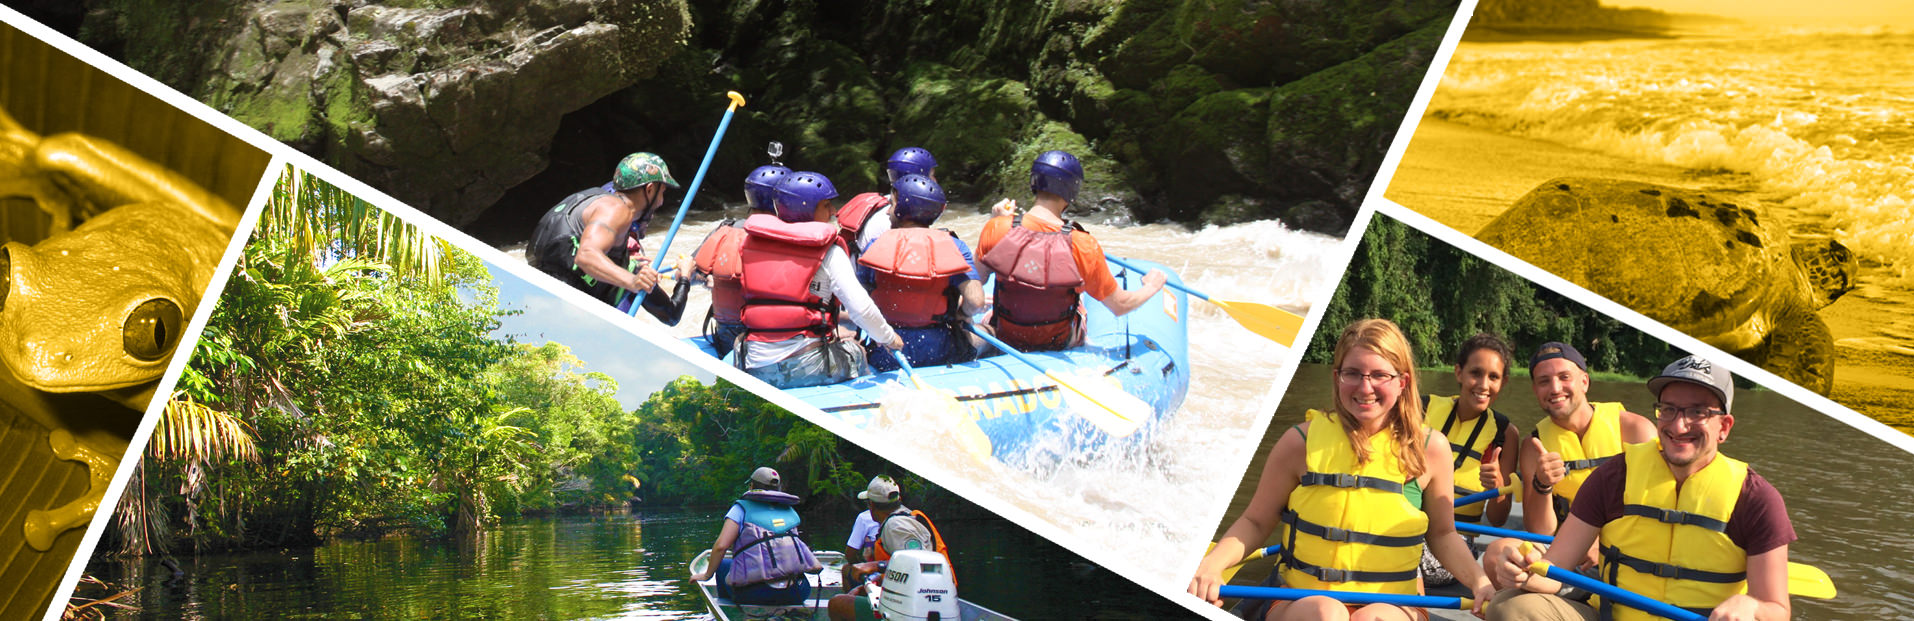 3-DAY TORTUGUERO + PACUARE ONE DAY